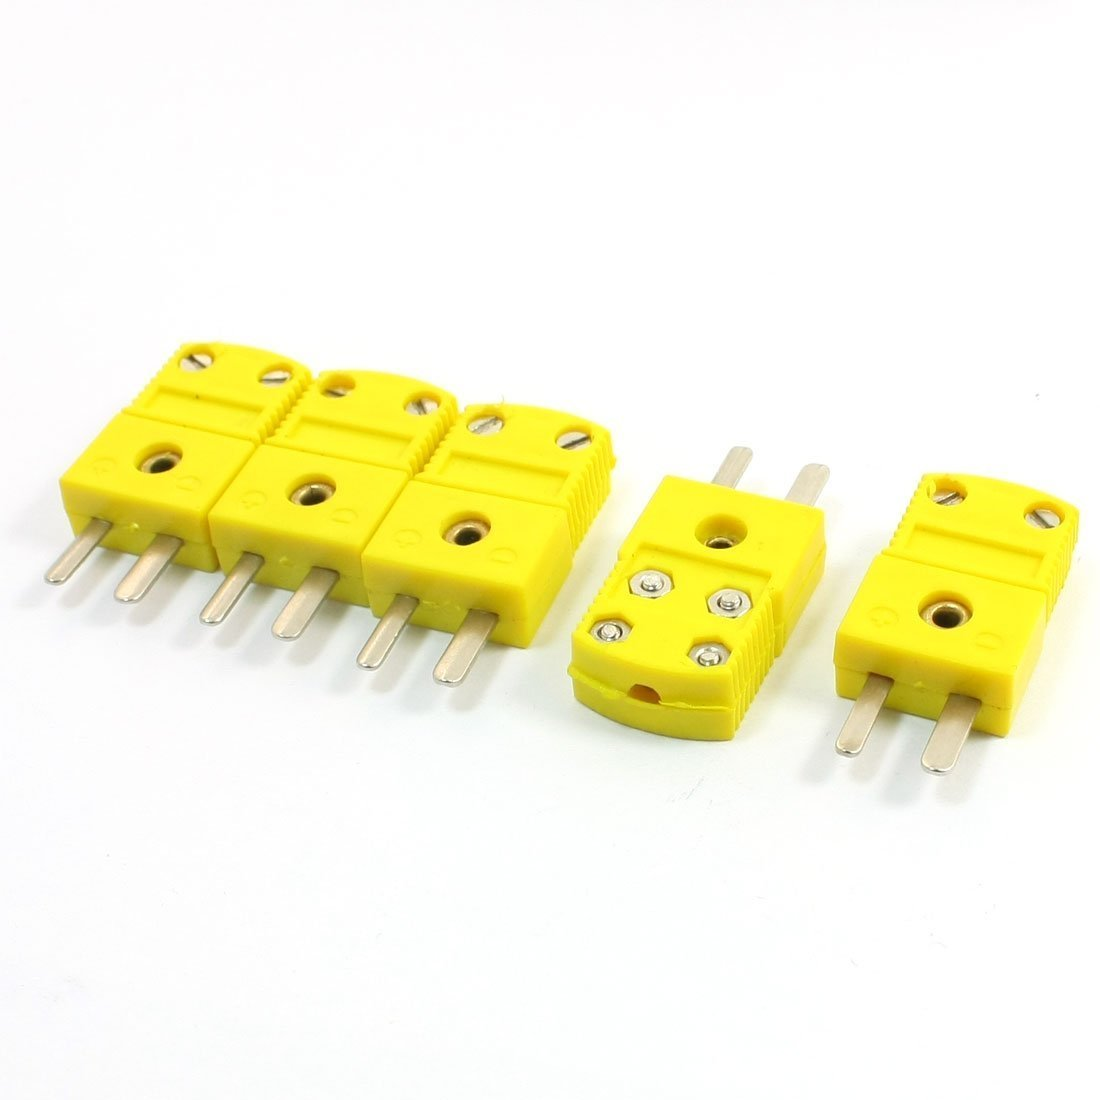 K Type Temperature Controller Circuit Diagram Thermocouple Sensors Podoy Connector Adapter Yellow For Mini Plug 5 Pack